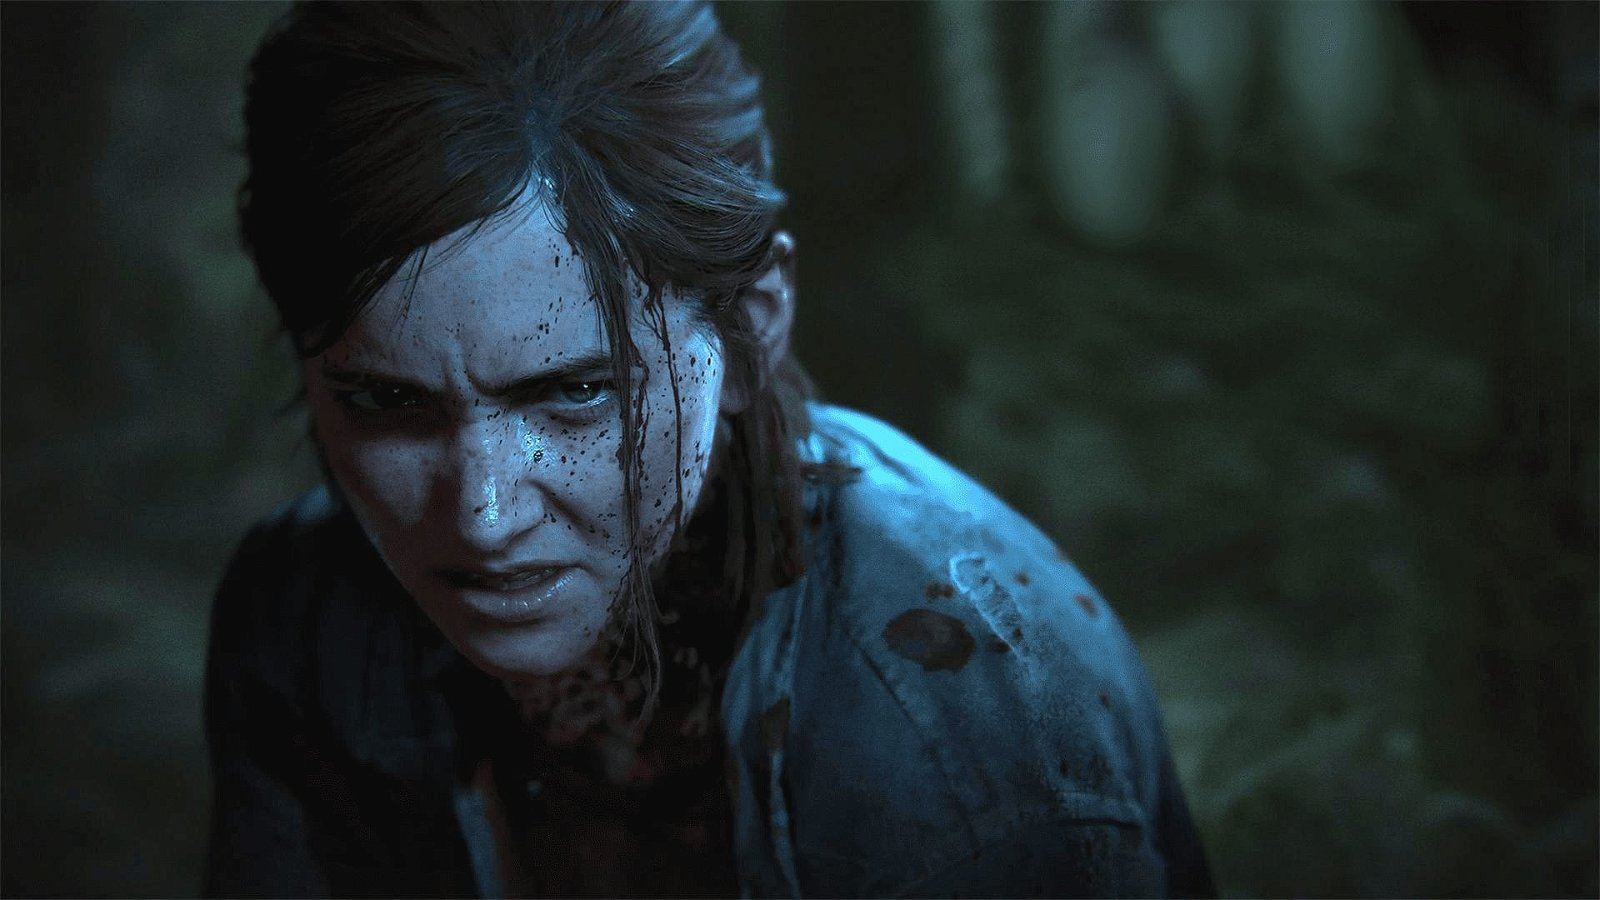 The Last of Us Part II Finally Gets A PS5 Upgrade